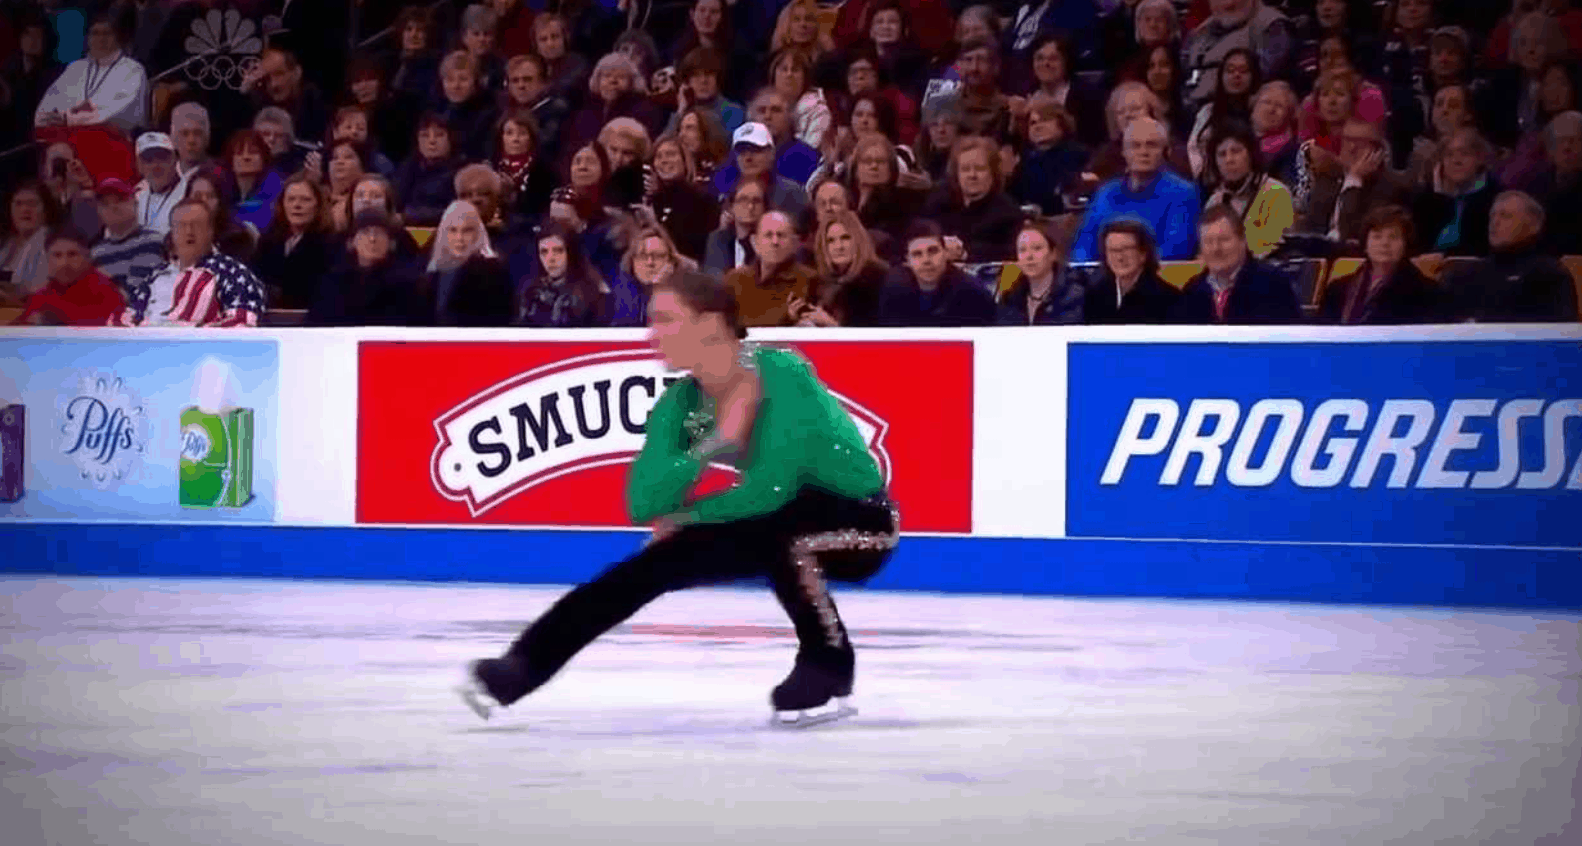 River dance on ice